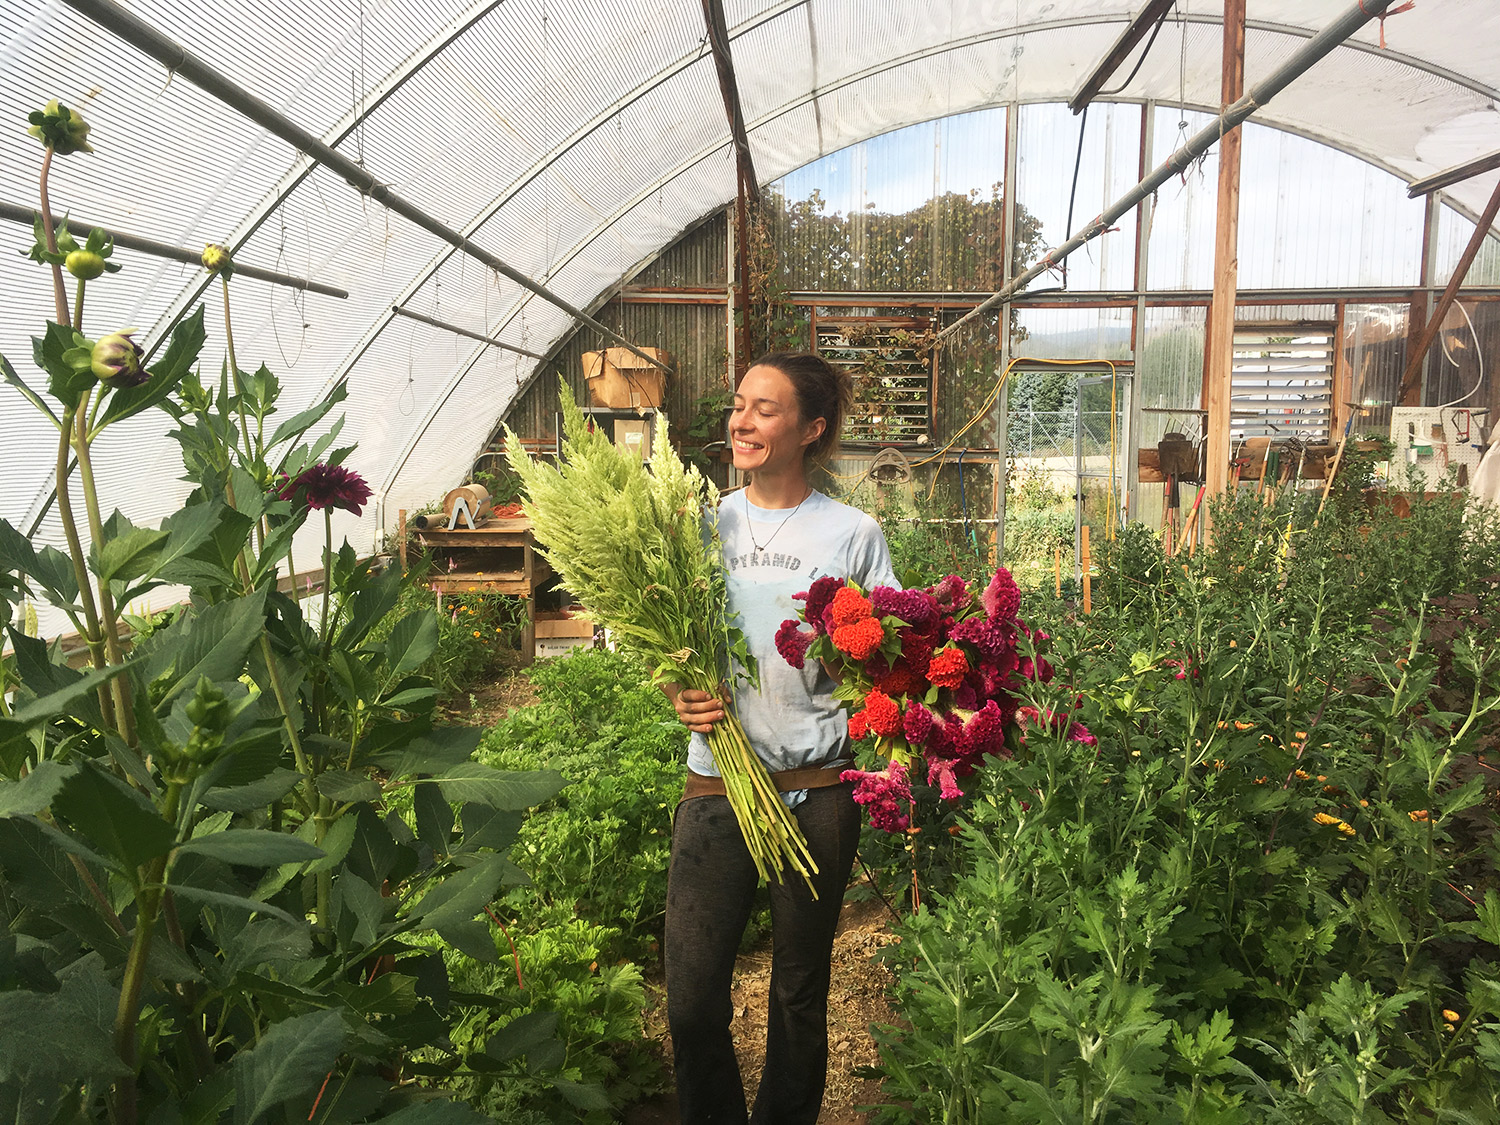 In the hoop house with Celosia 'Sylphid', 'Cramer's Burgundy', 'Chief Persimmon' and 'Cramer's Rose'.